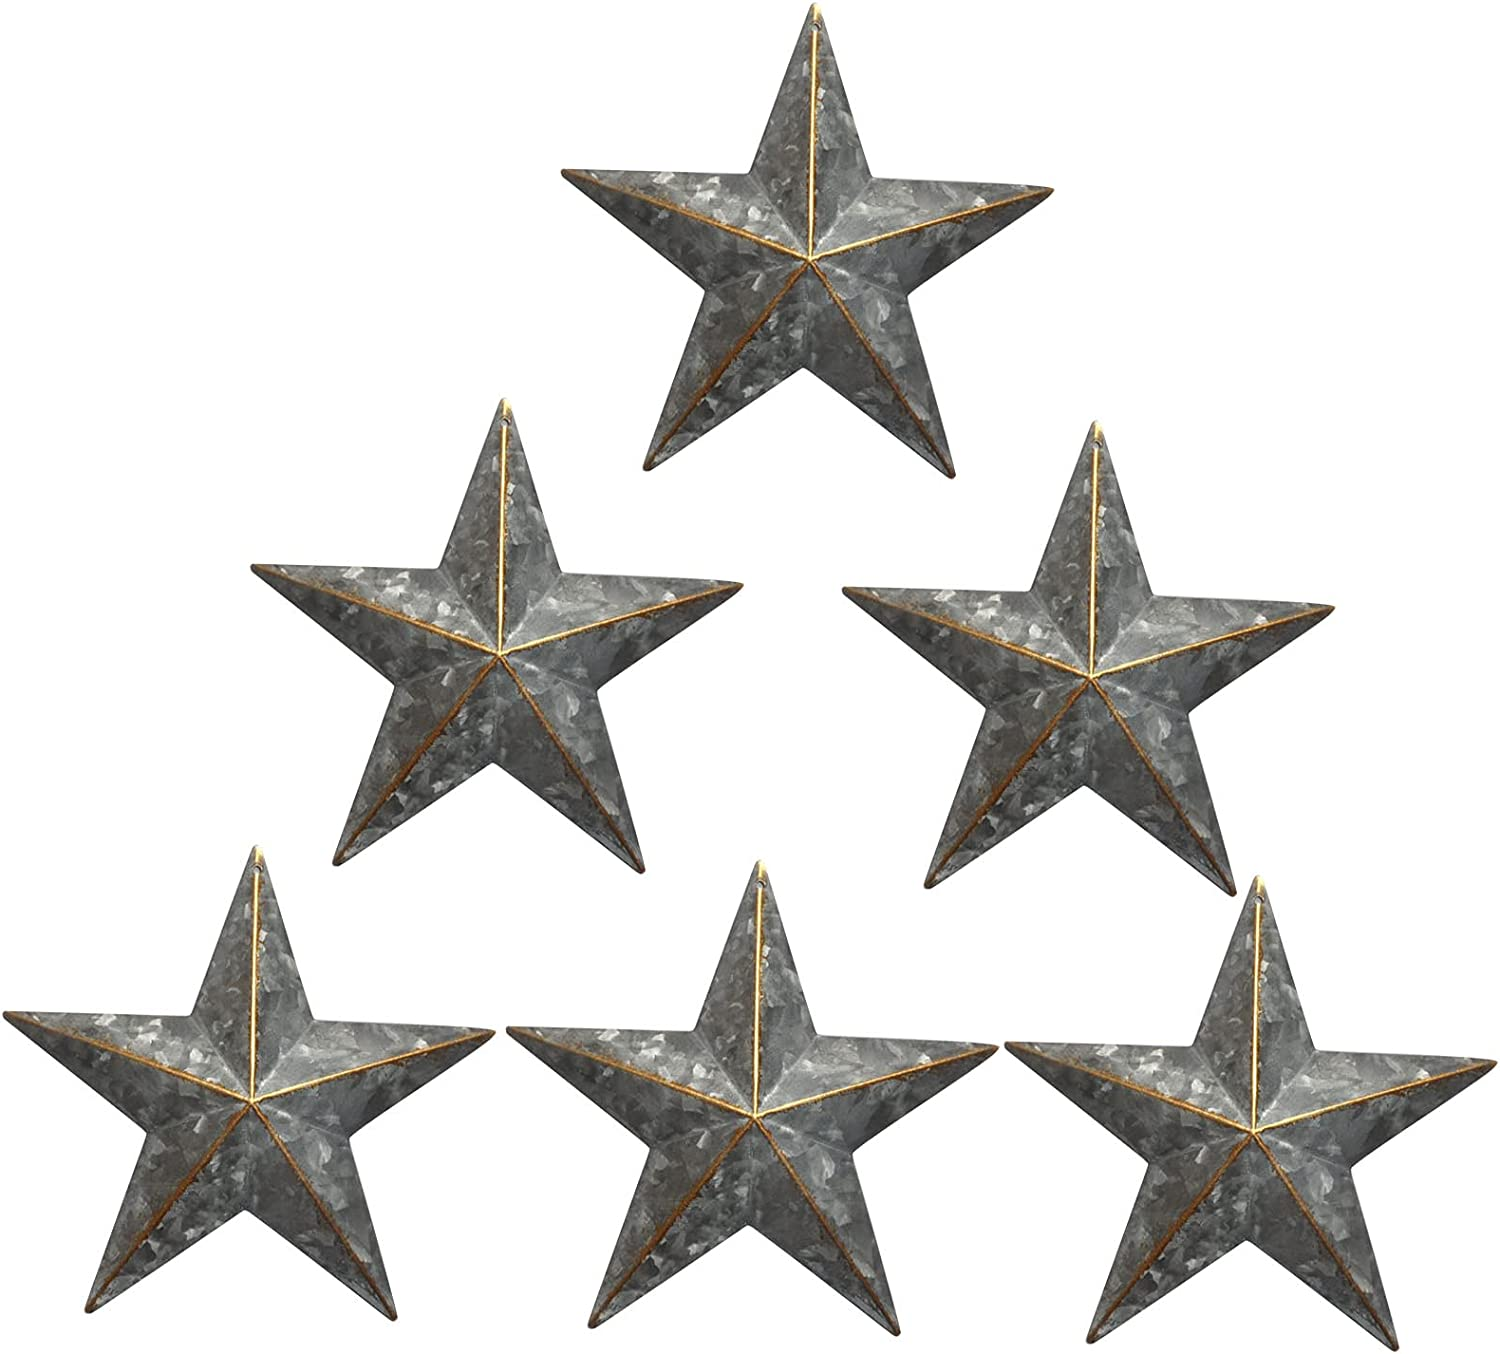 Galvanized Barn Star/Metal Stars for Outside Texas Stars Art Rustic Vintage Western Country Home Farmhouse Wall/Door Decor,Country Indoor Outdoor Christmas Home decor, Quality Gift as Star Decorations 5-1/2Inch, Set of 6.(Galvanized)